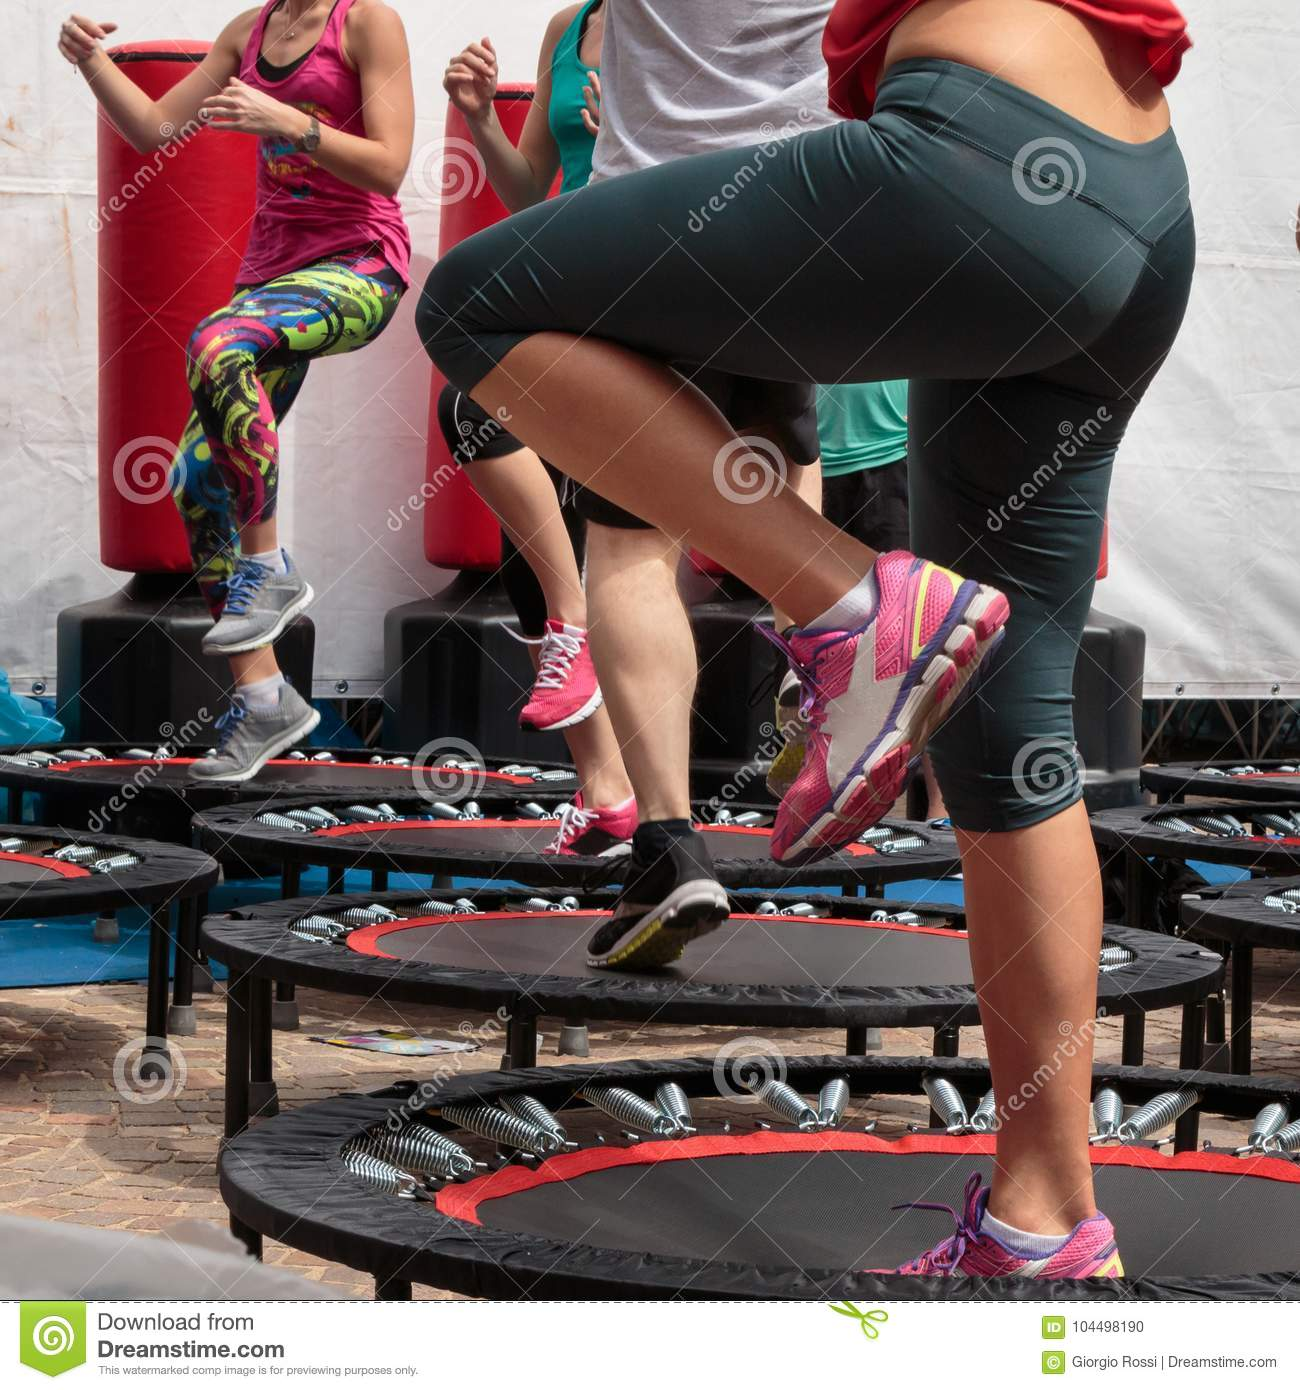 b9812388926f2 Mini Trampoline Workout  Girl Doing Fitness Exercise In Class At Gym ...